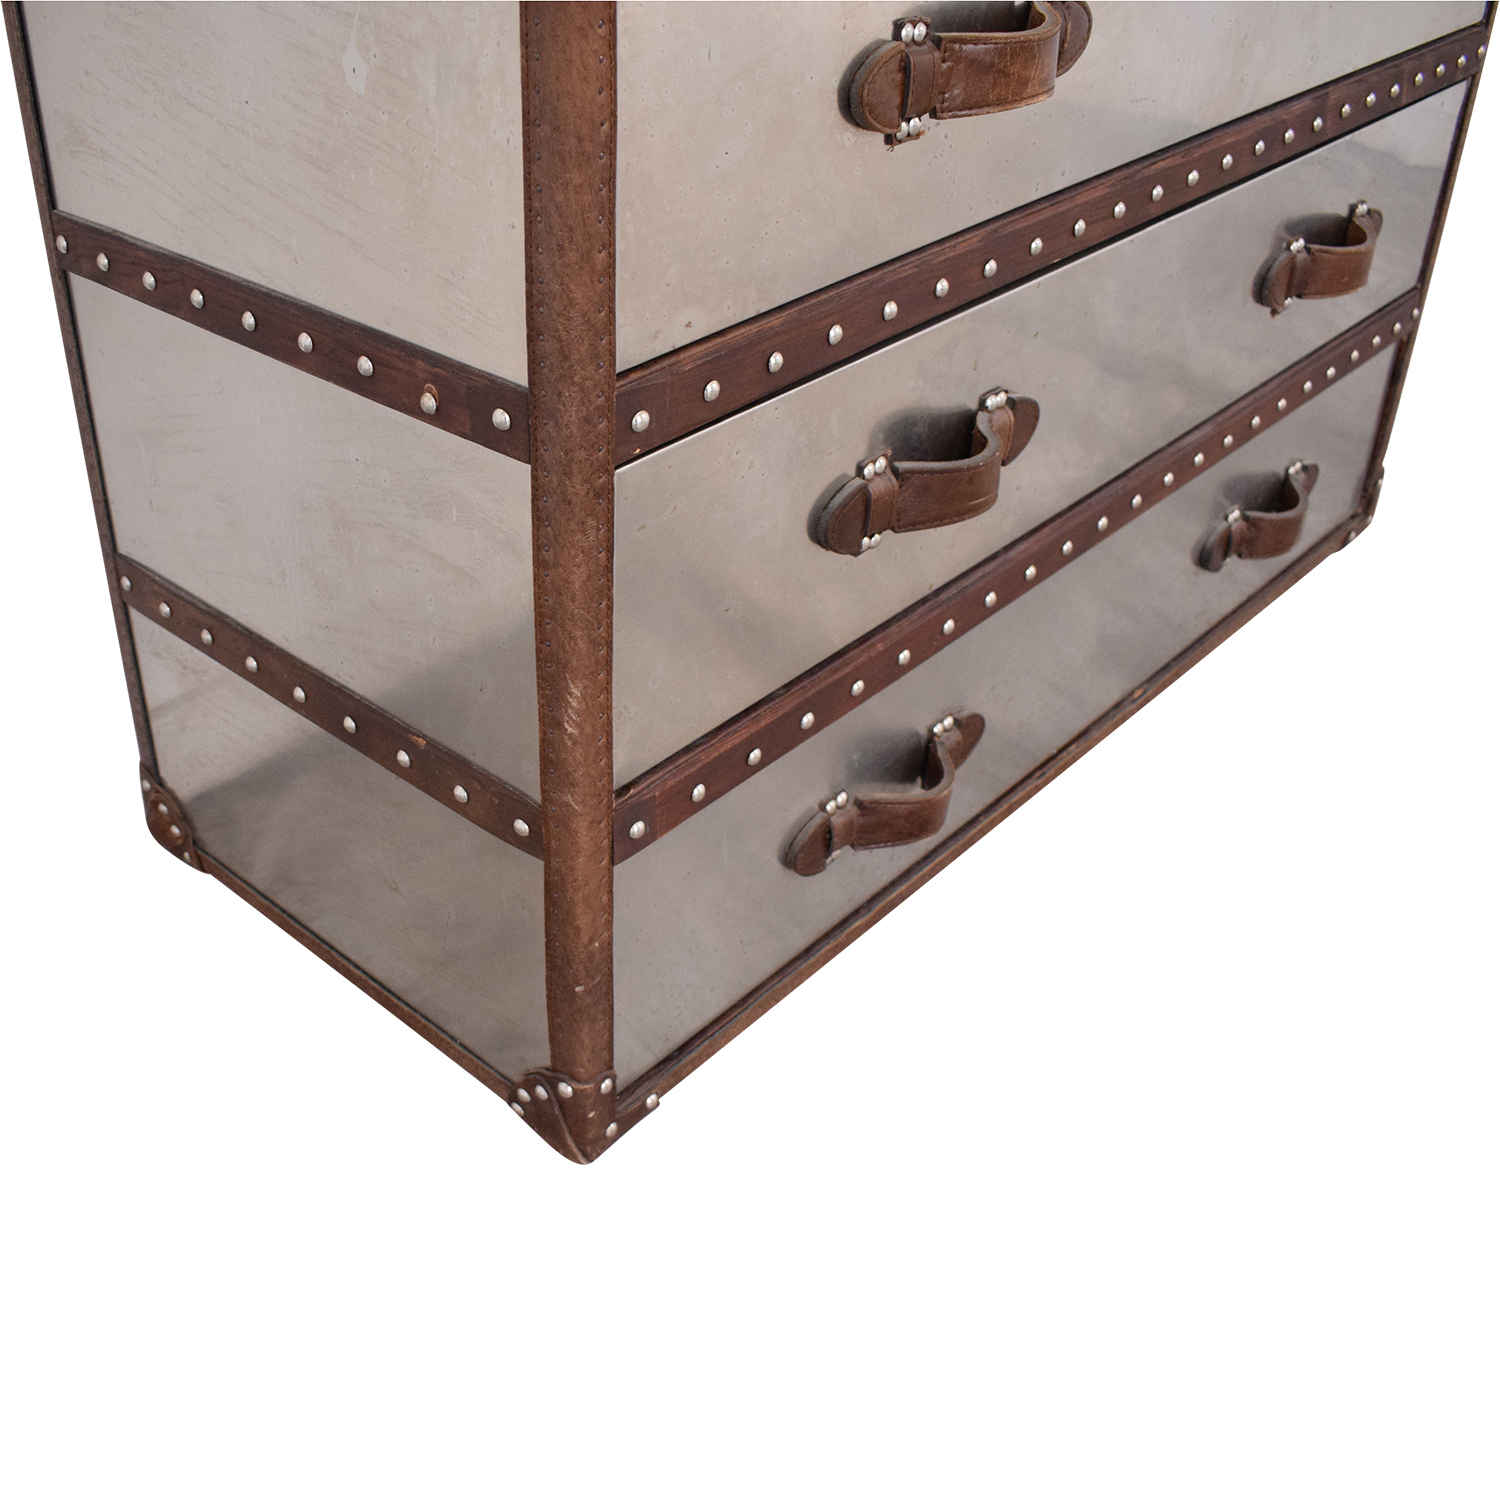 Restoration Hardware Restoration Hardware Mayfair Steamer Trunk used